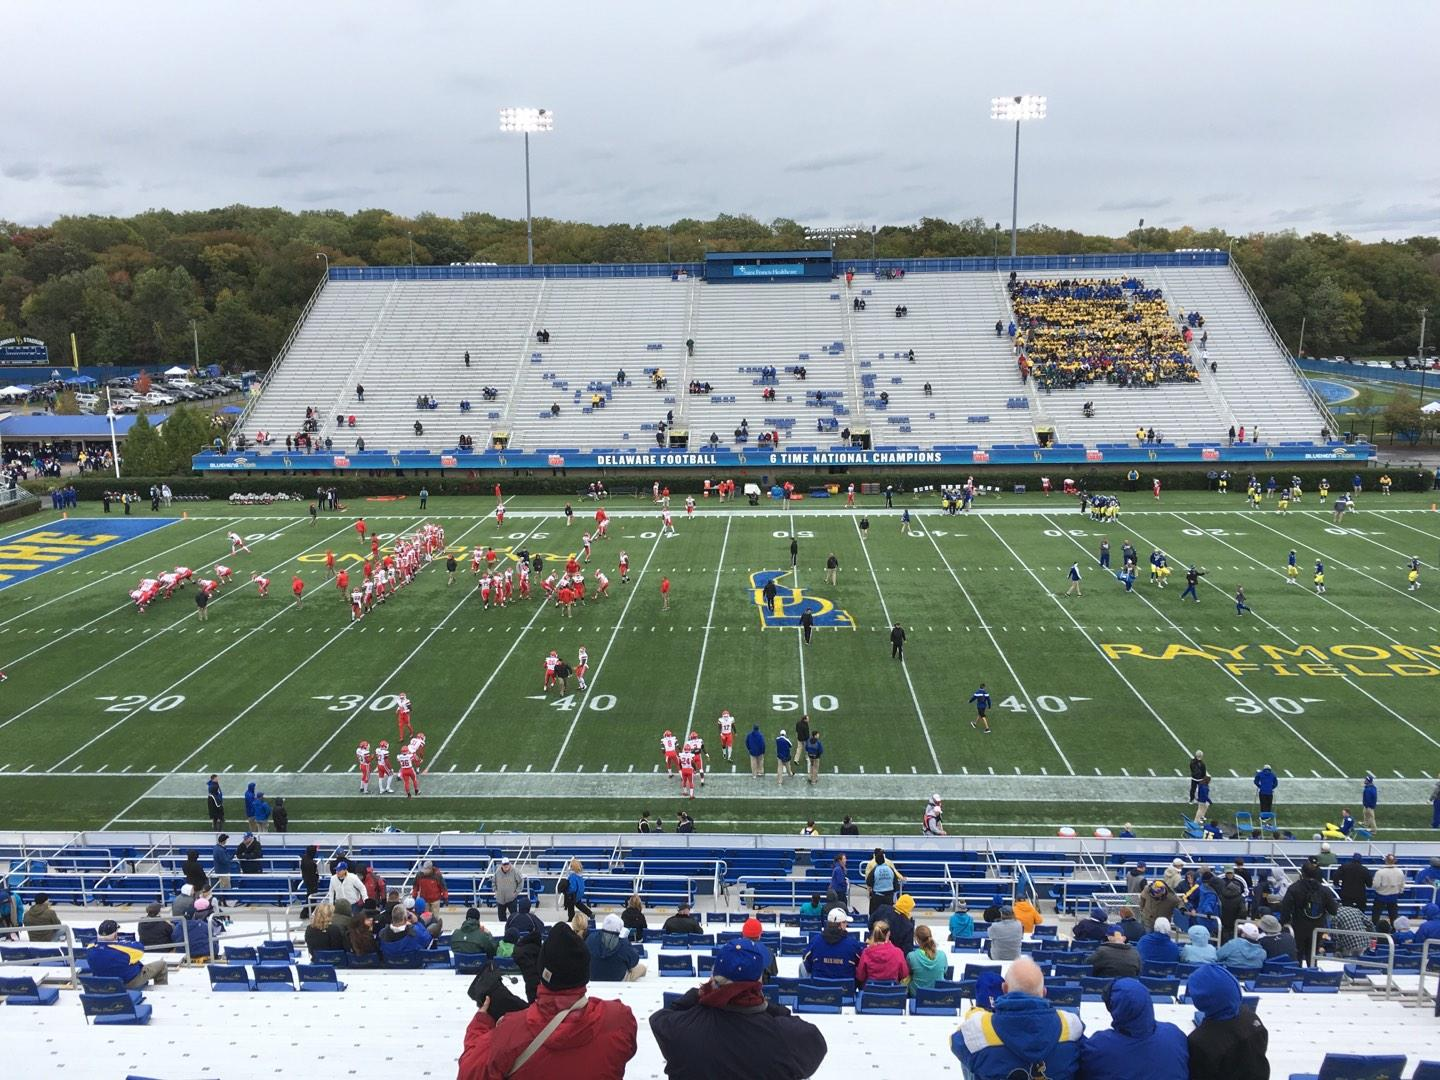 Delaware Stadium Section D Row Kk Seat 14